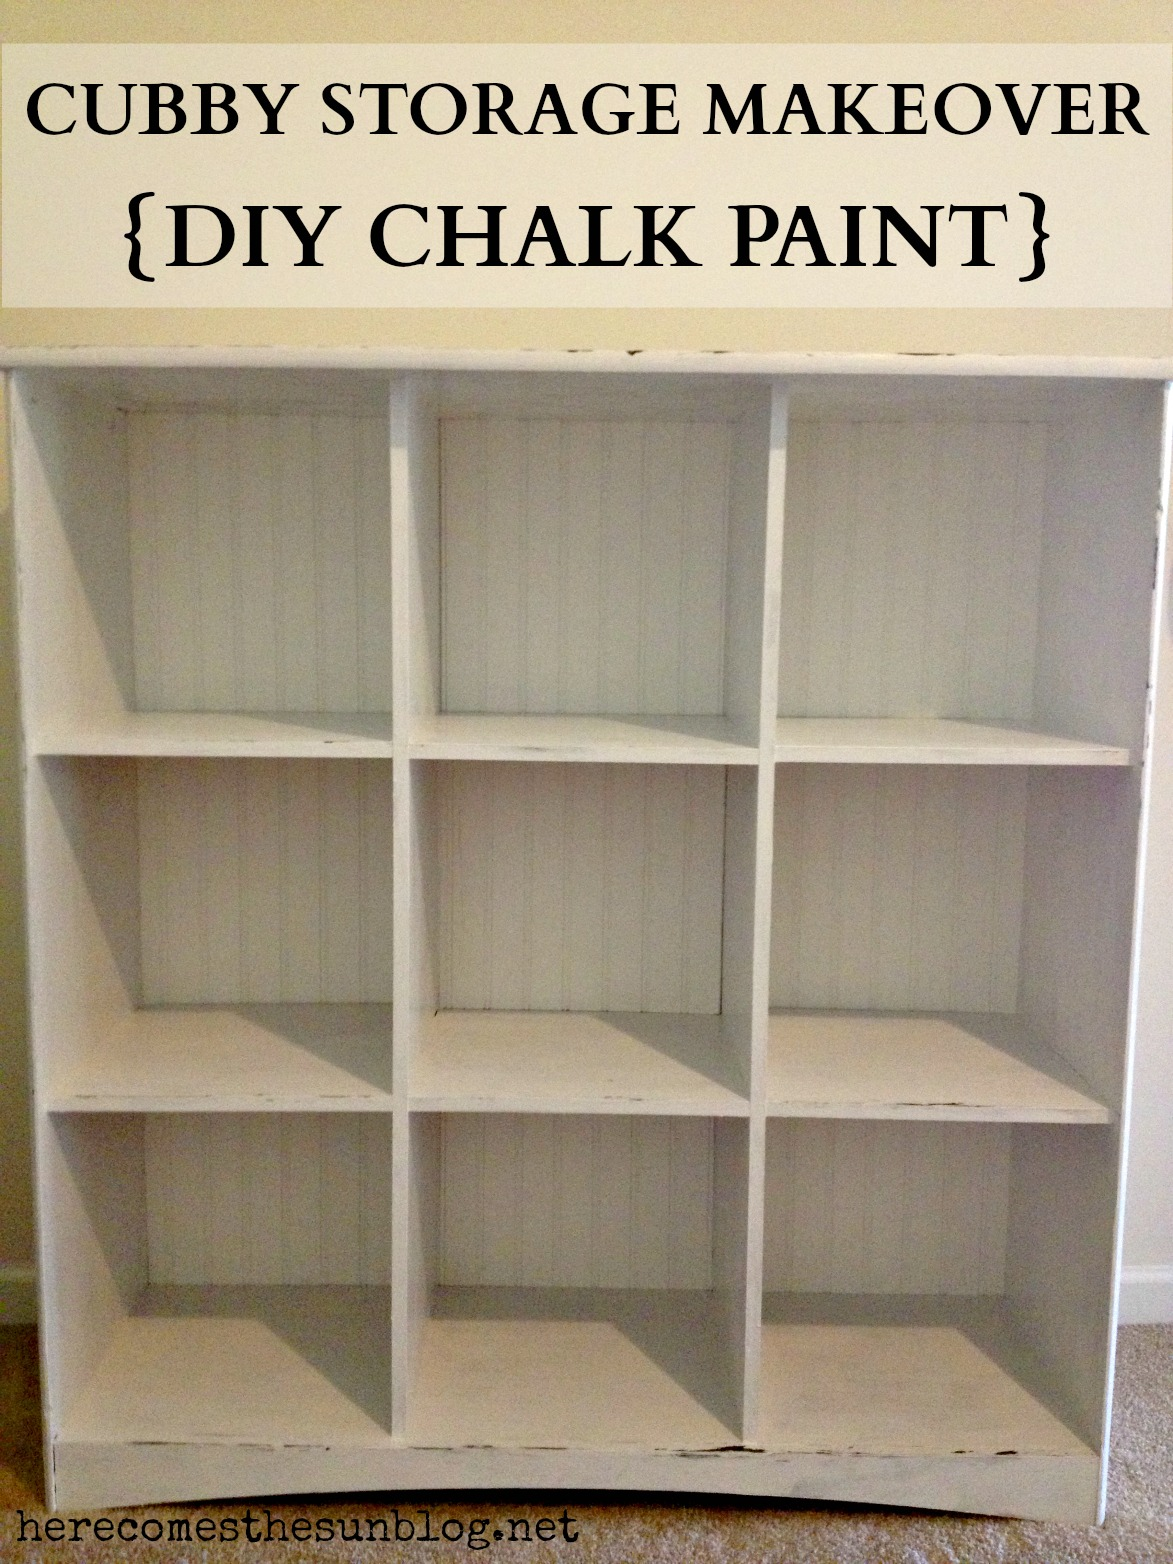 Superbe Cubby Storage Makeover {DIY Chalk Paint}